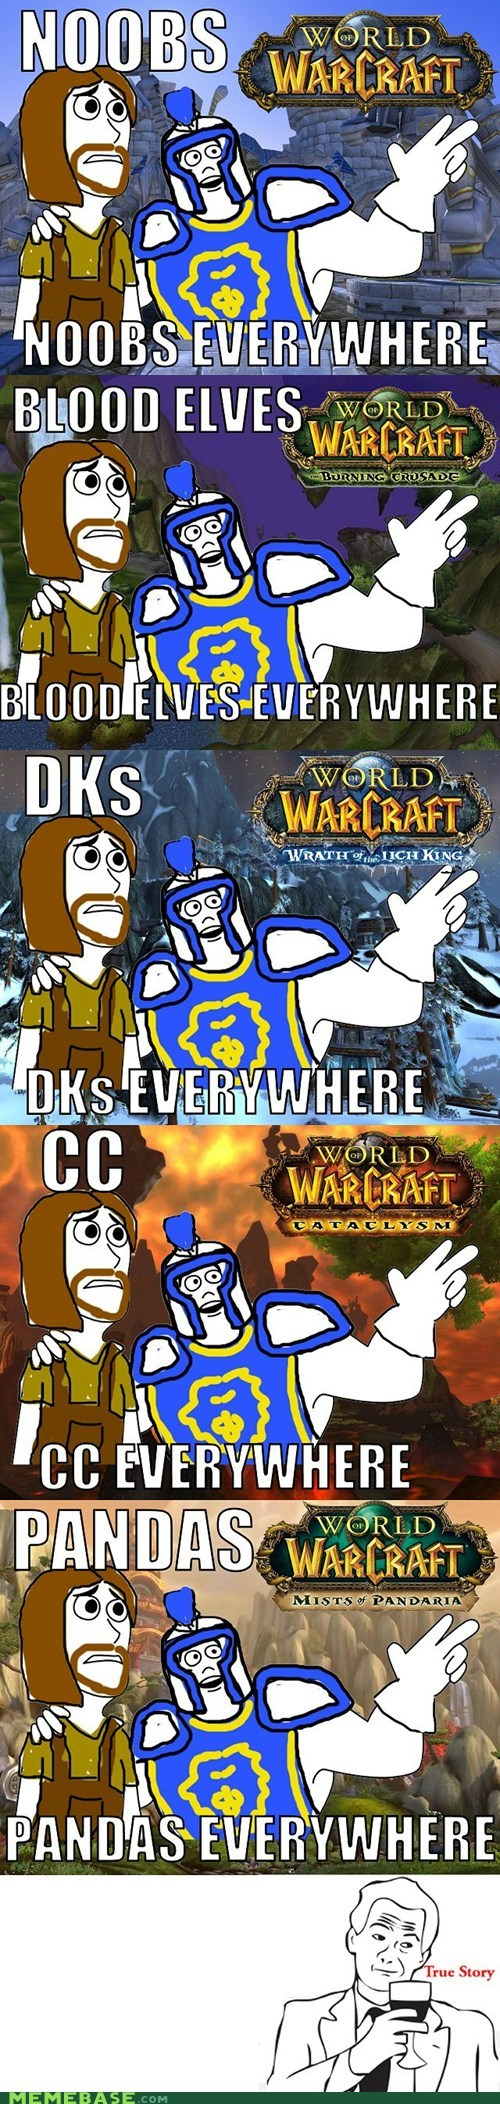 Video Games: World of Warcraft for Dummies